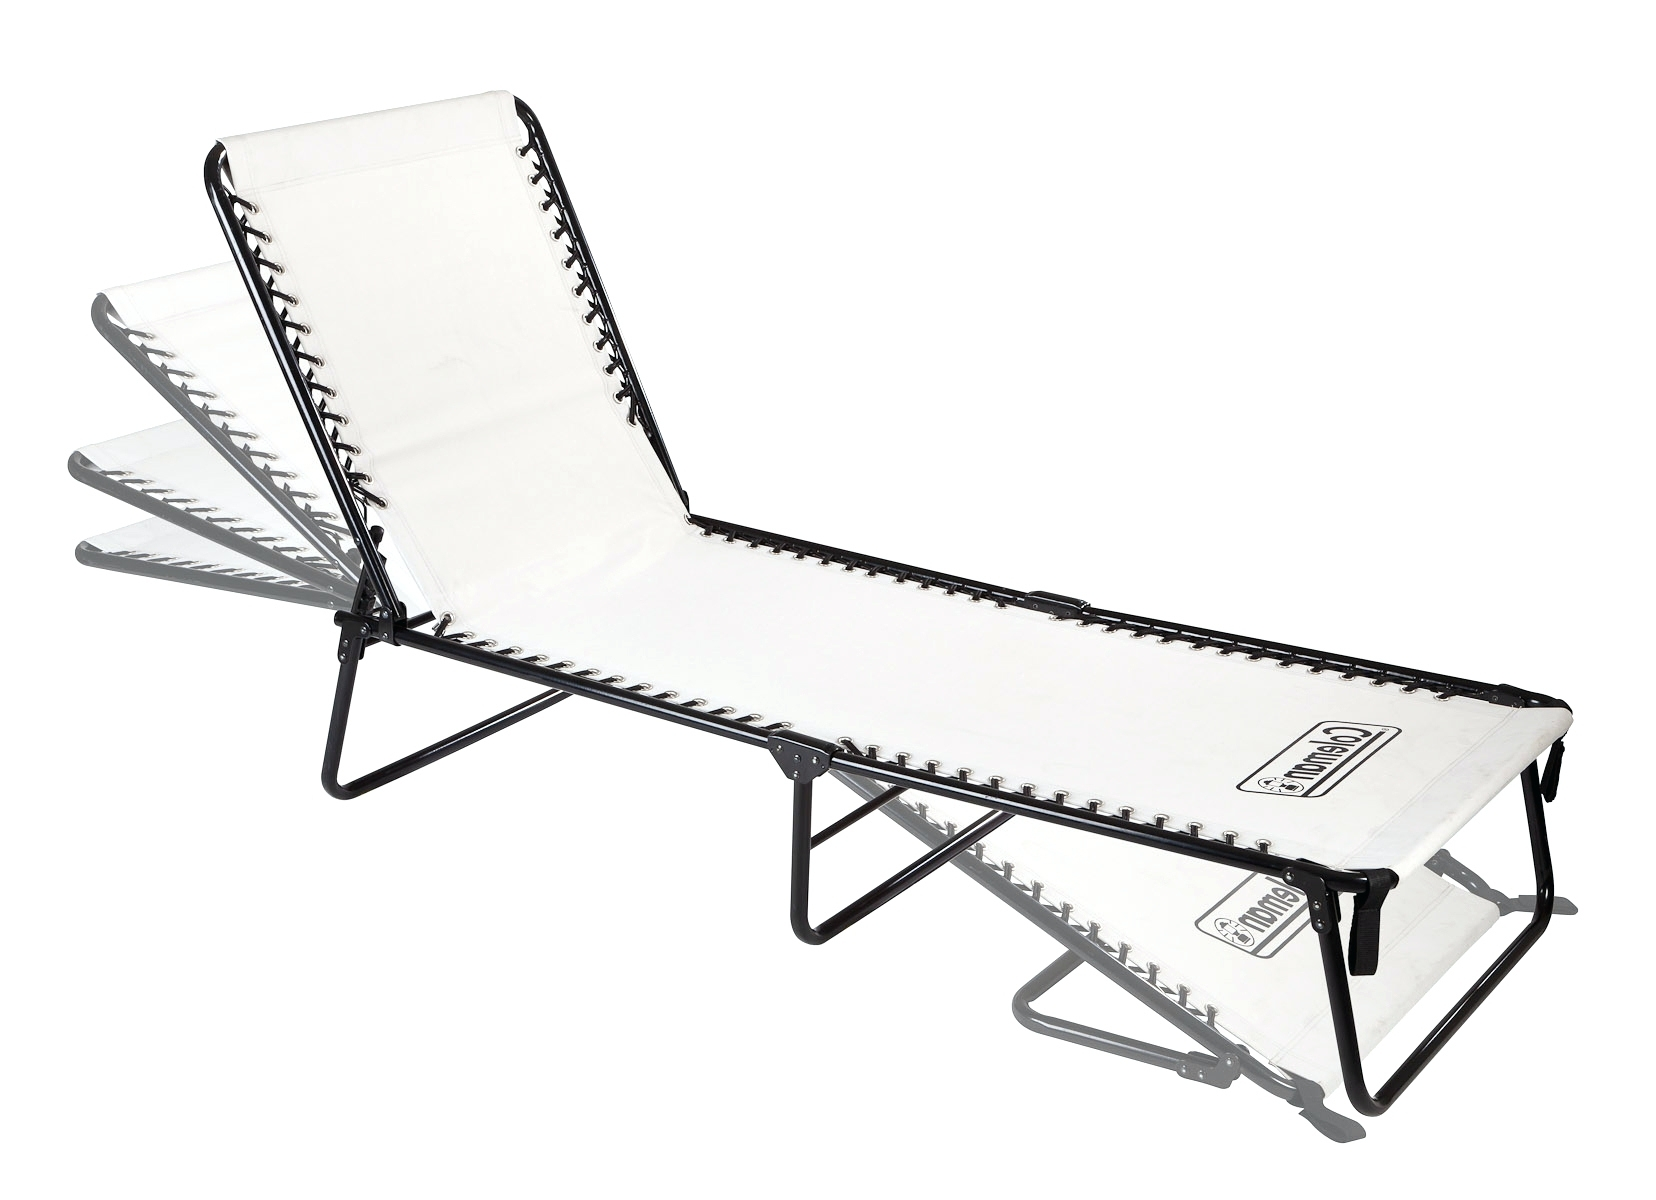 Foldable Chaise Lounges In Recent Portable Chaise Lounge Chairs Outdoor • Lounge Chairs Ideas (View 6 of 15)